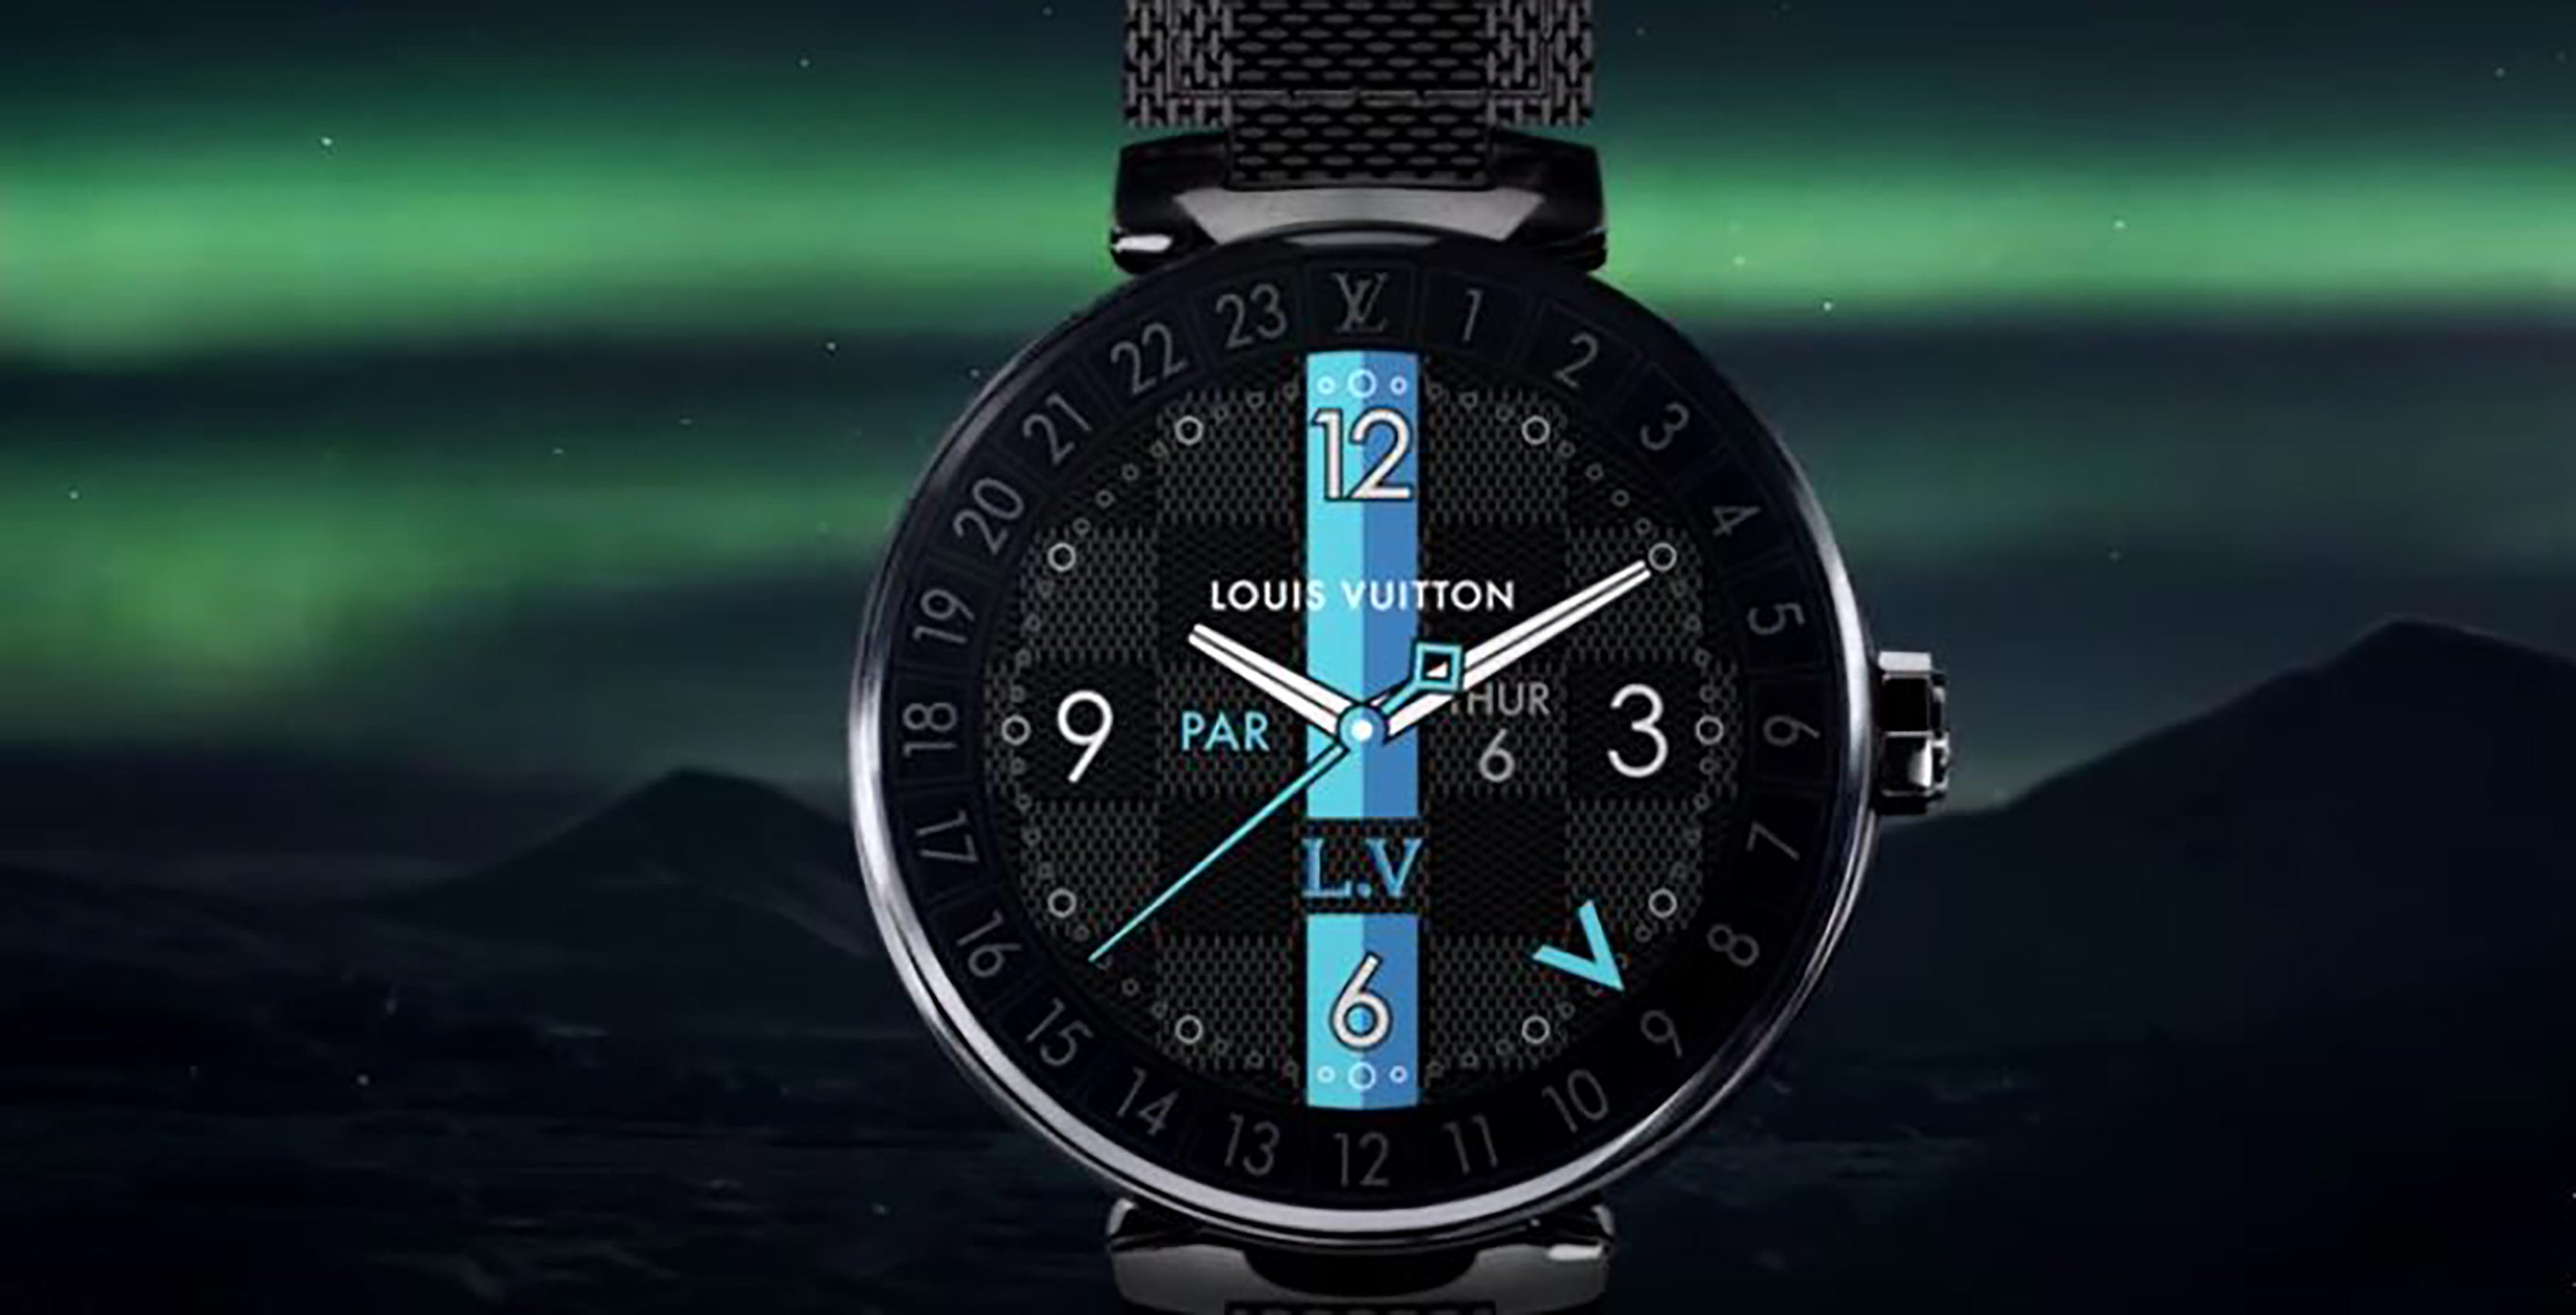 fc9922bafff6 Louis Vuitton s Tambour Horizon smartwatch launches with  3